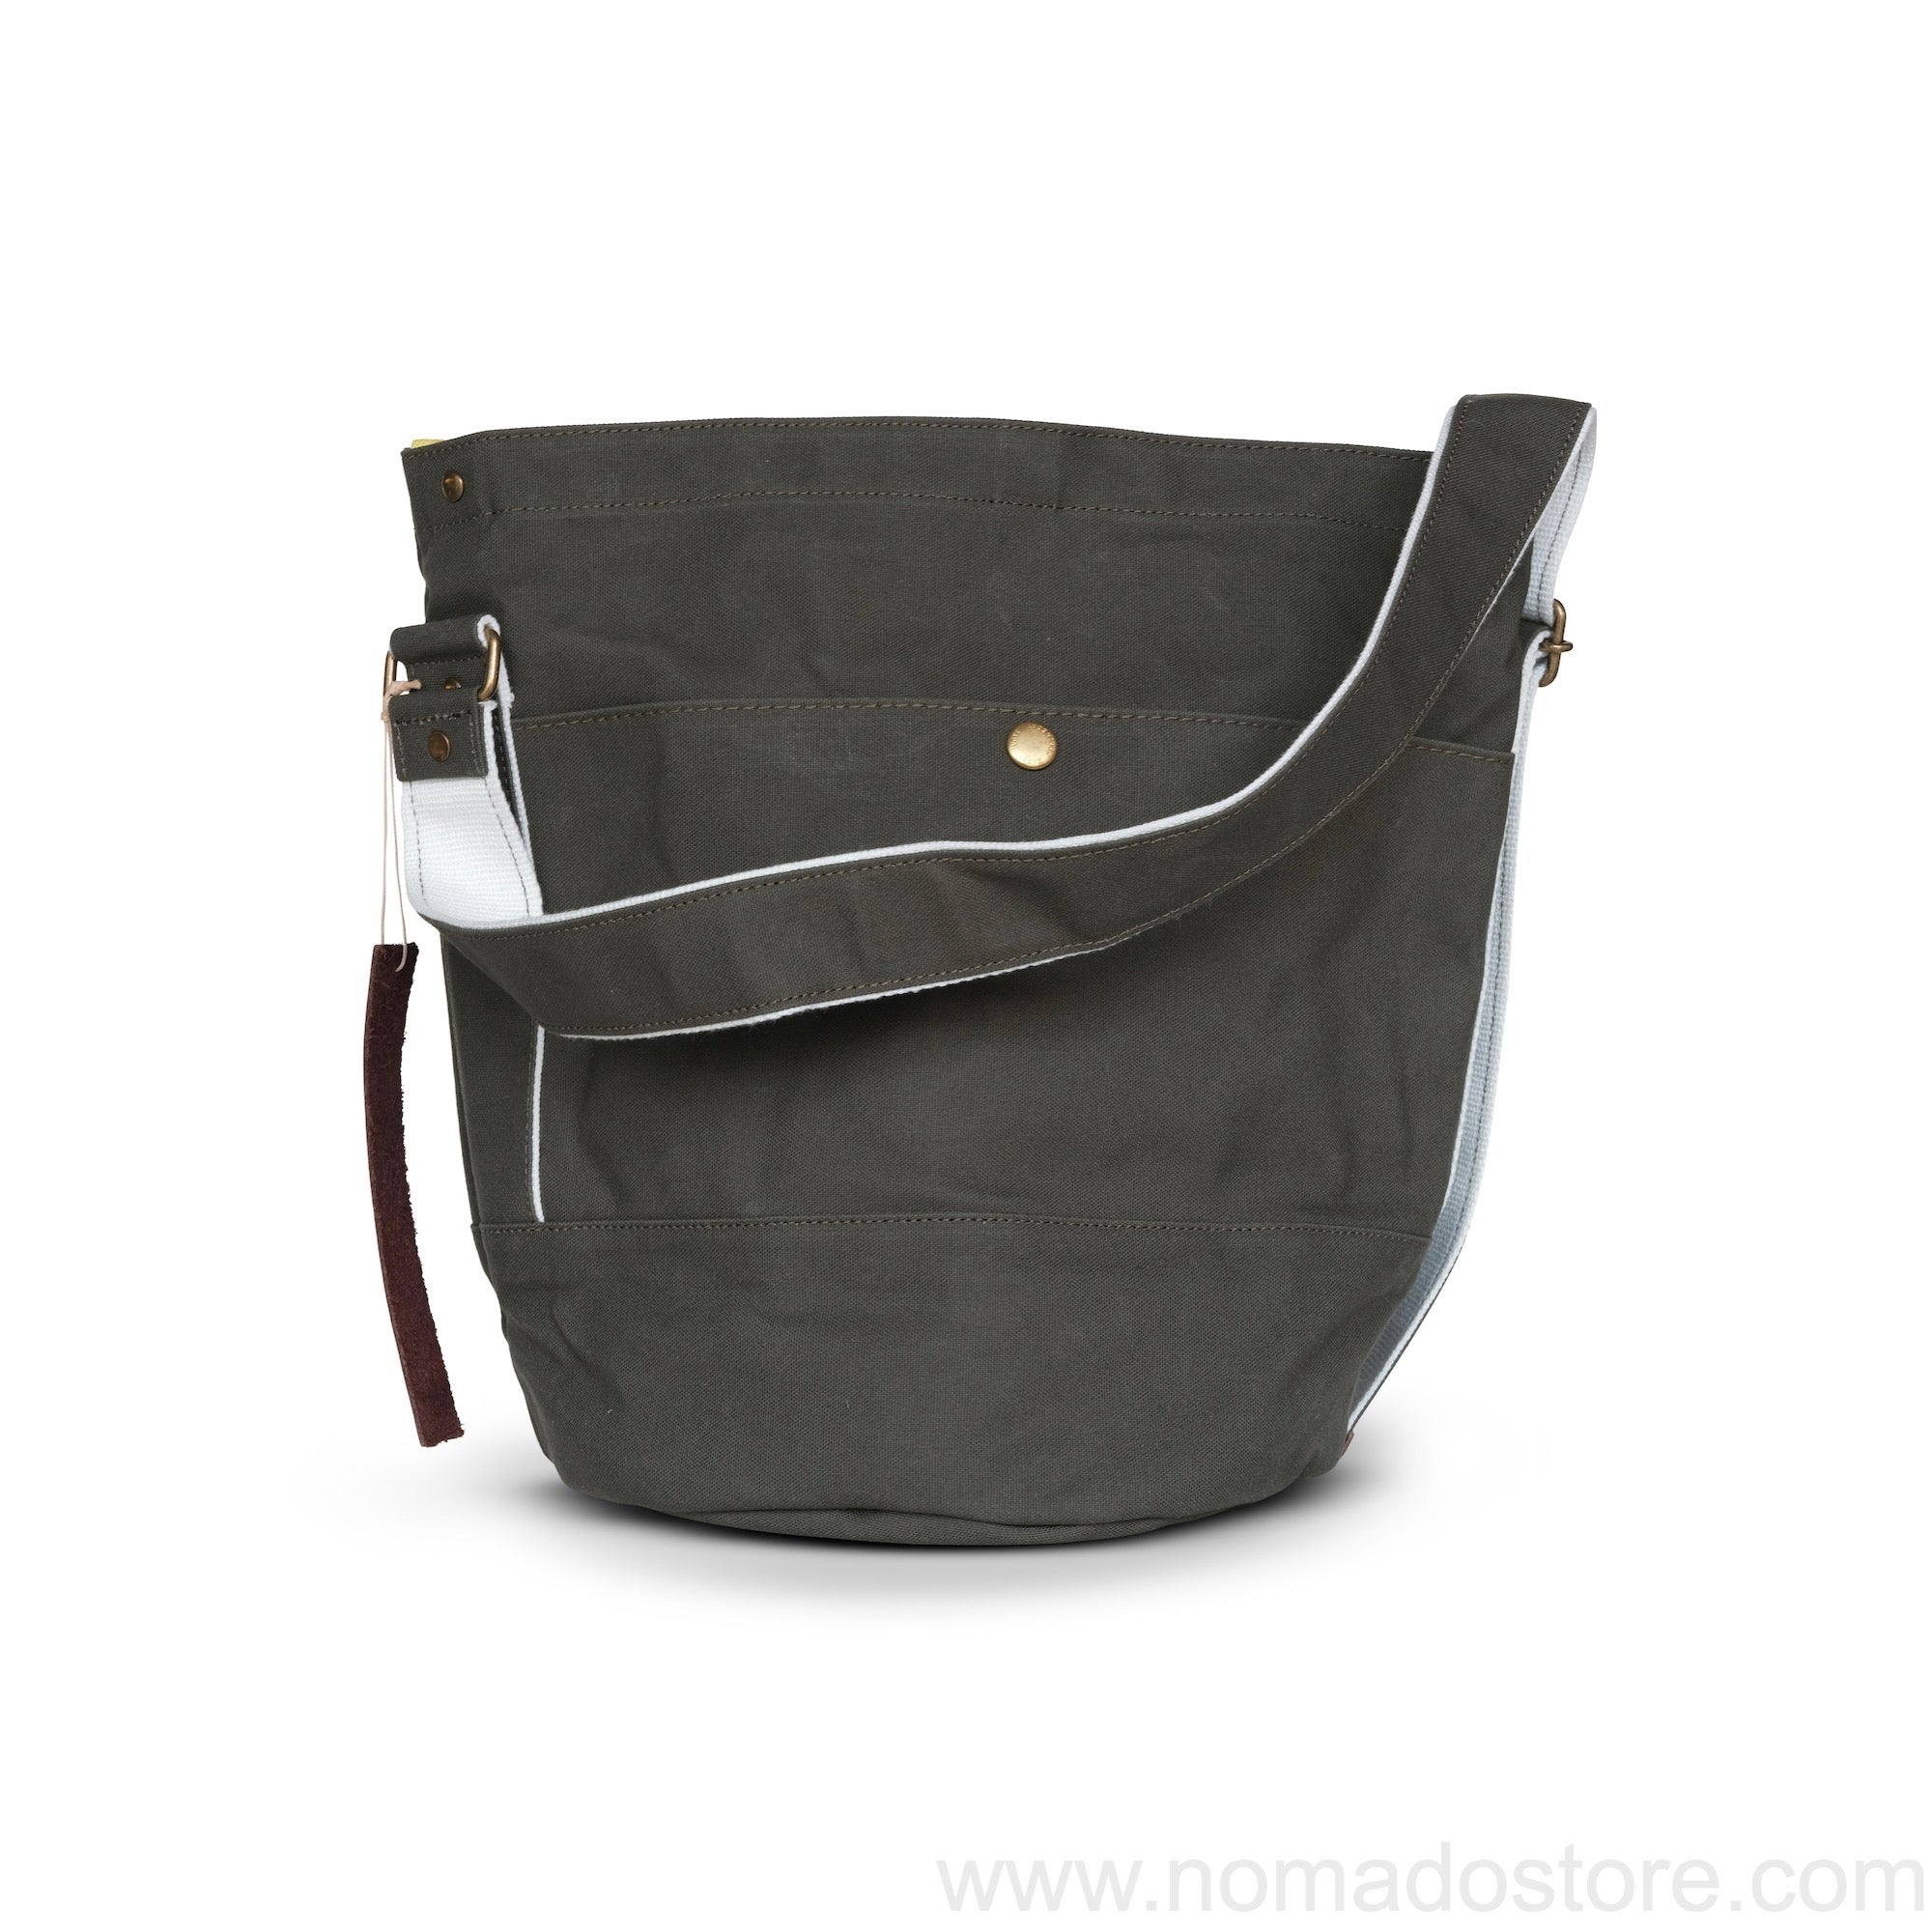 Marineday Roots Bucket Shoulder Bag (Khaki) - NOMADO Store